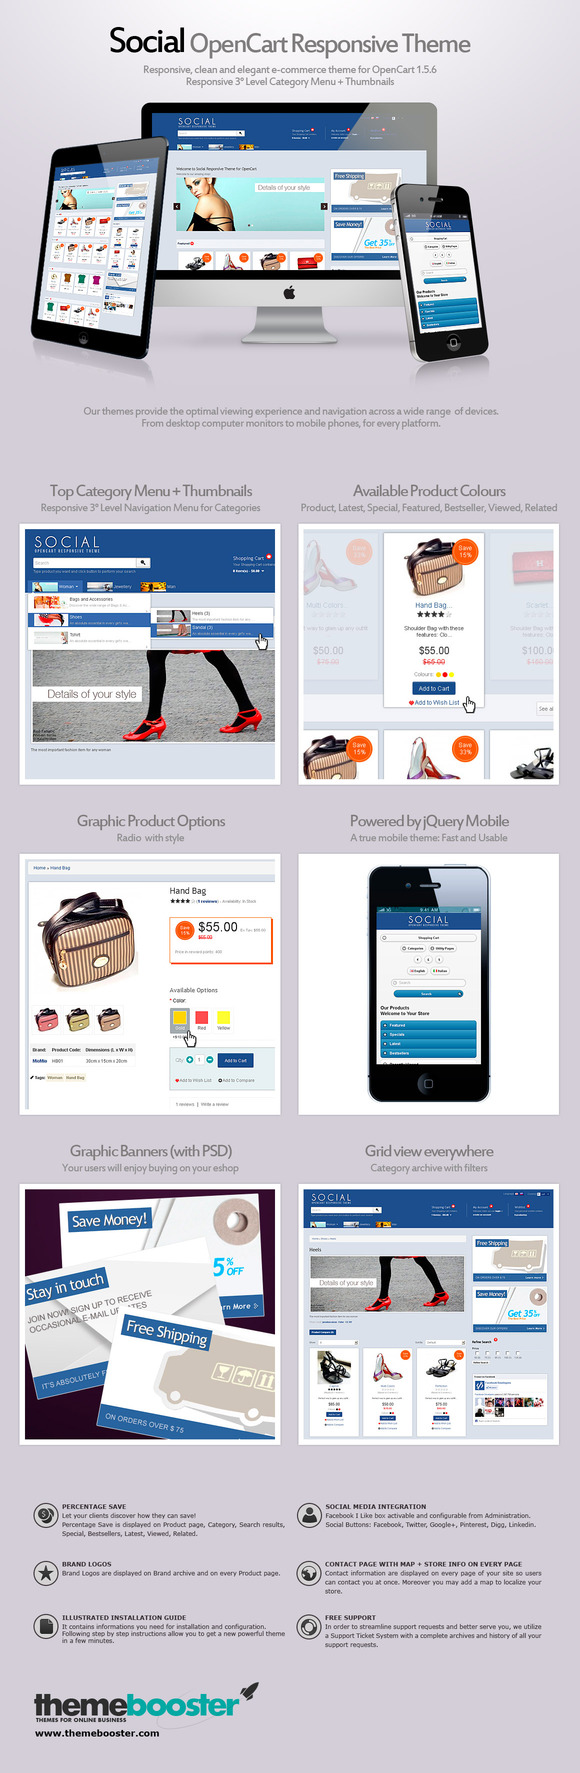 Social Responsive Theme For OpenCart